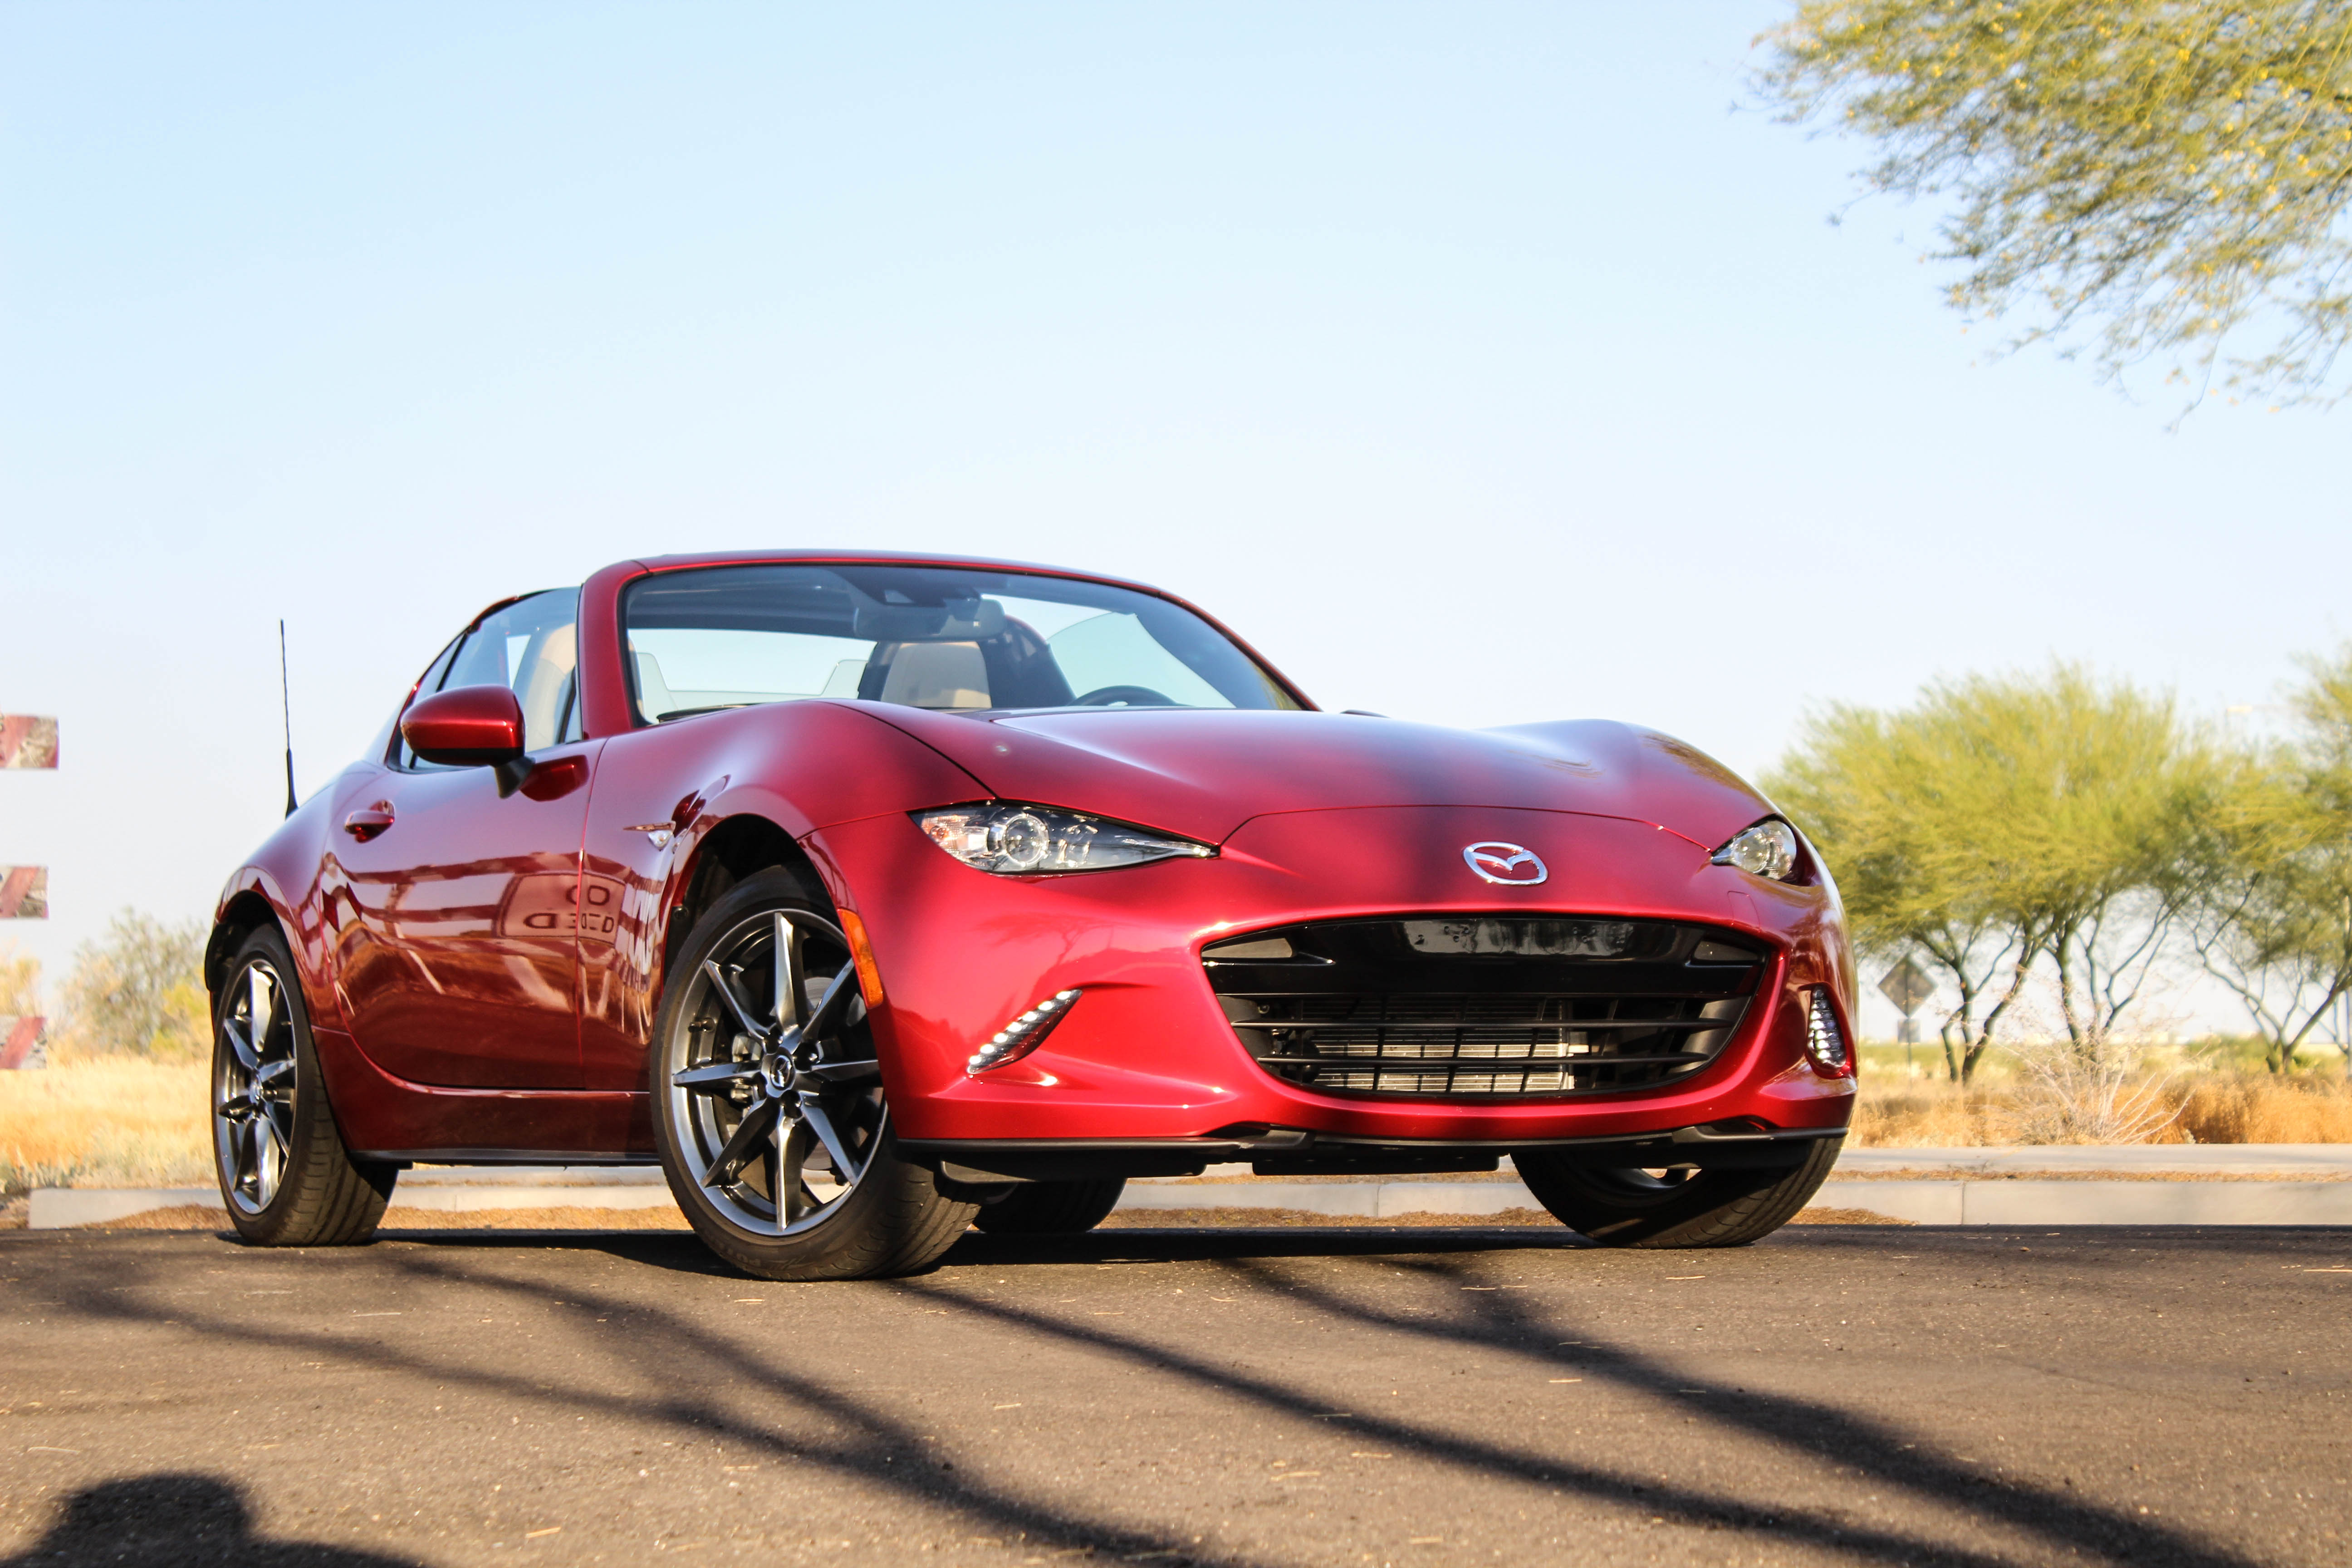 already road soft roadster think something perfect img by seems small mazda into utah back to taking six speed a rf top mx blog perfection and their so perfecting can it is turning that manual